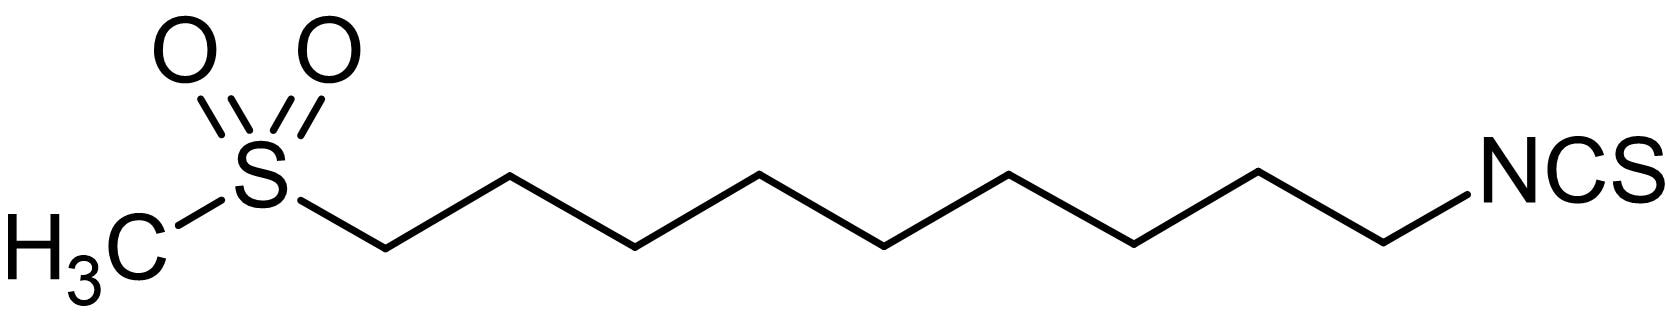 Chemical Structure - 1-Isothiocyanato-9-(methylsulfonyl)nonane, analogue of Erysolin (ab142901)